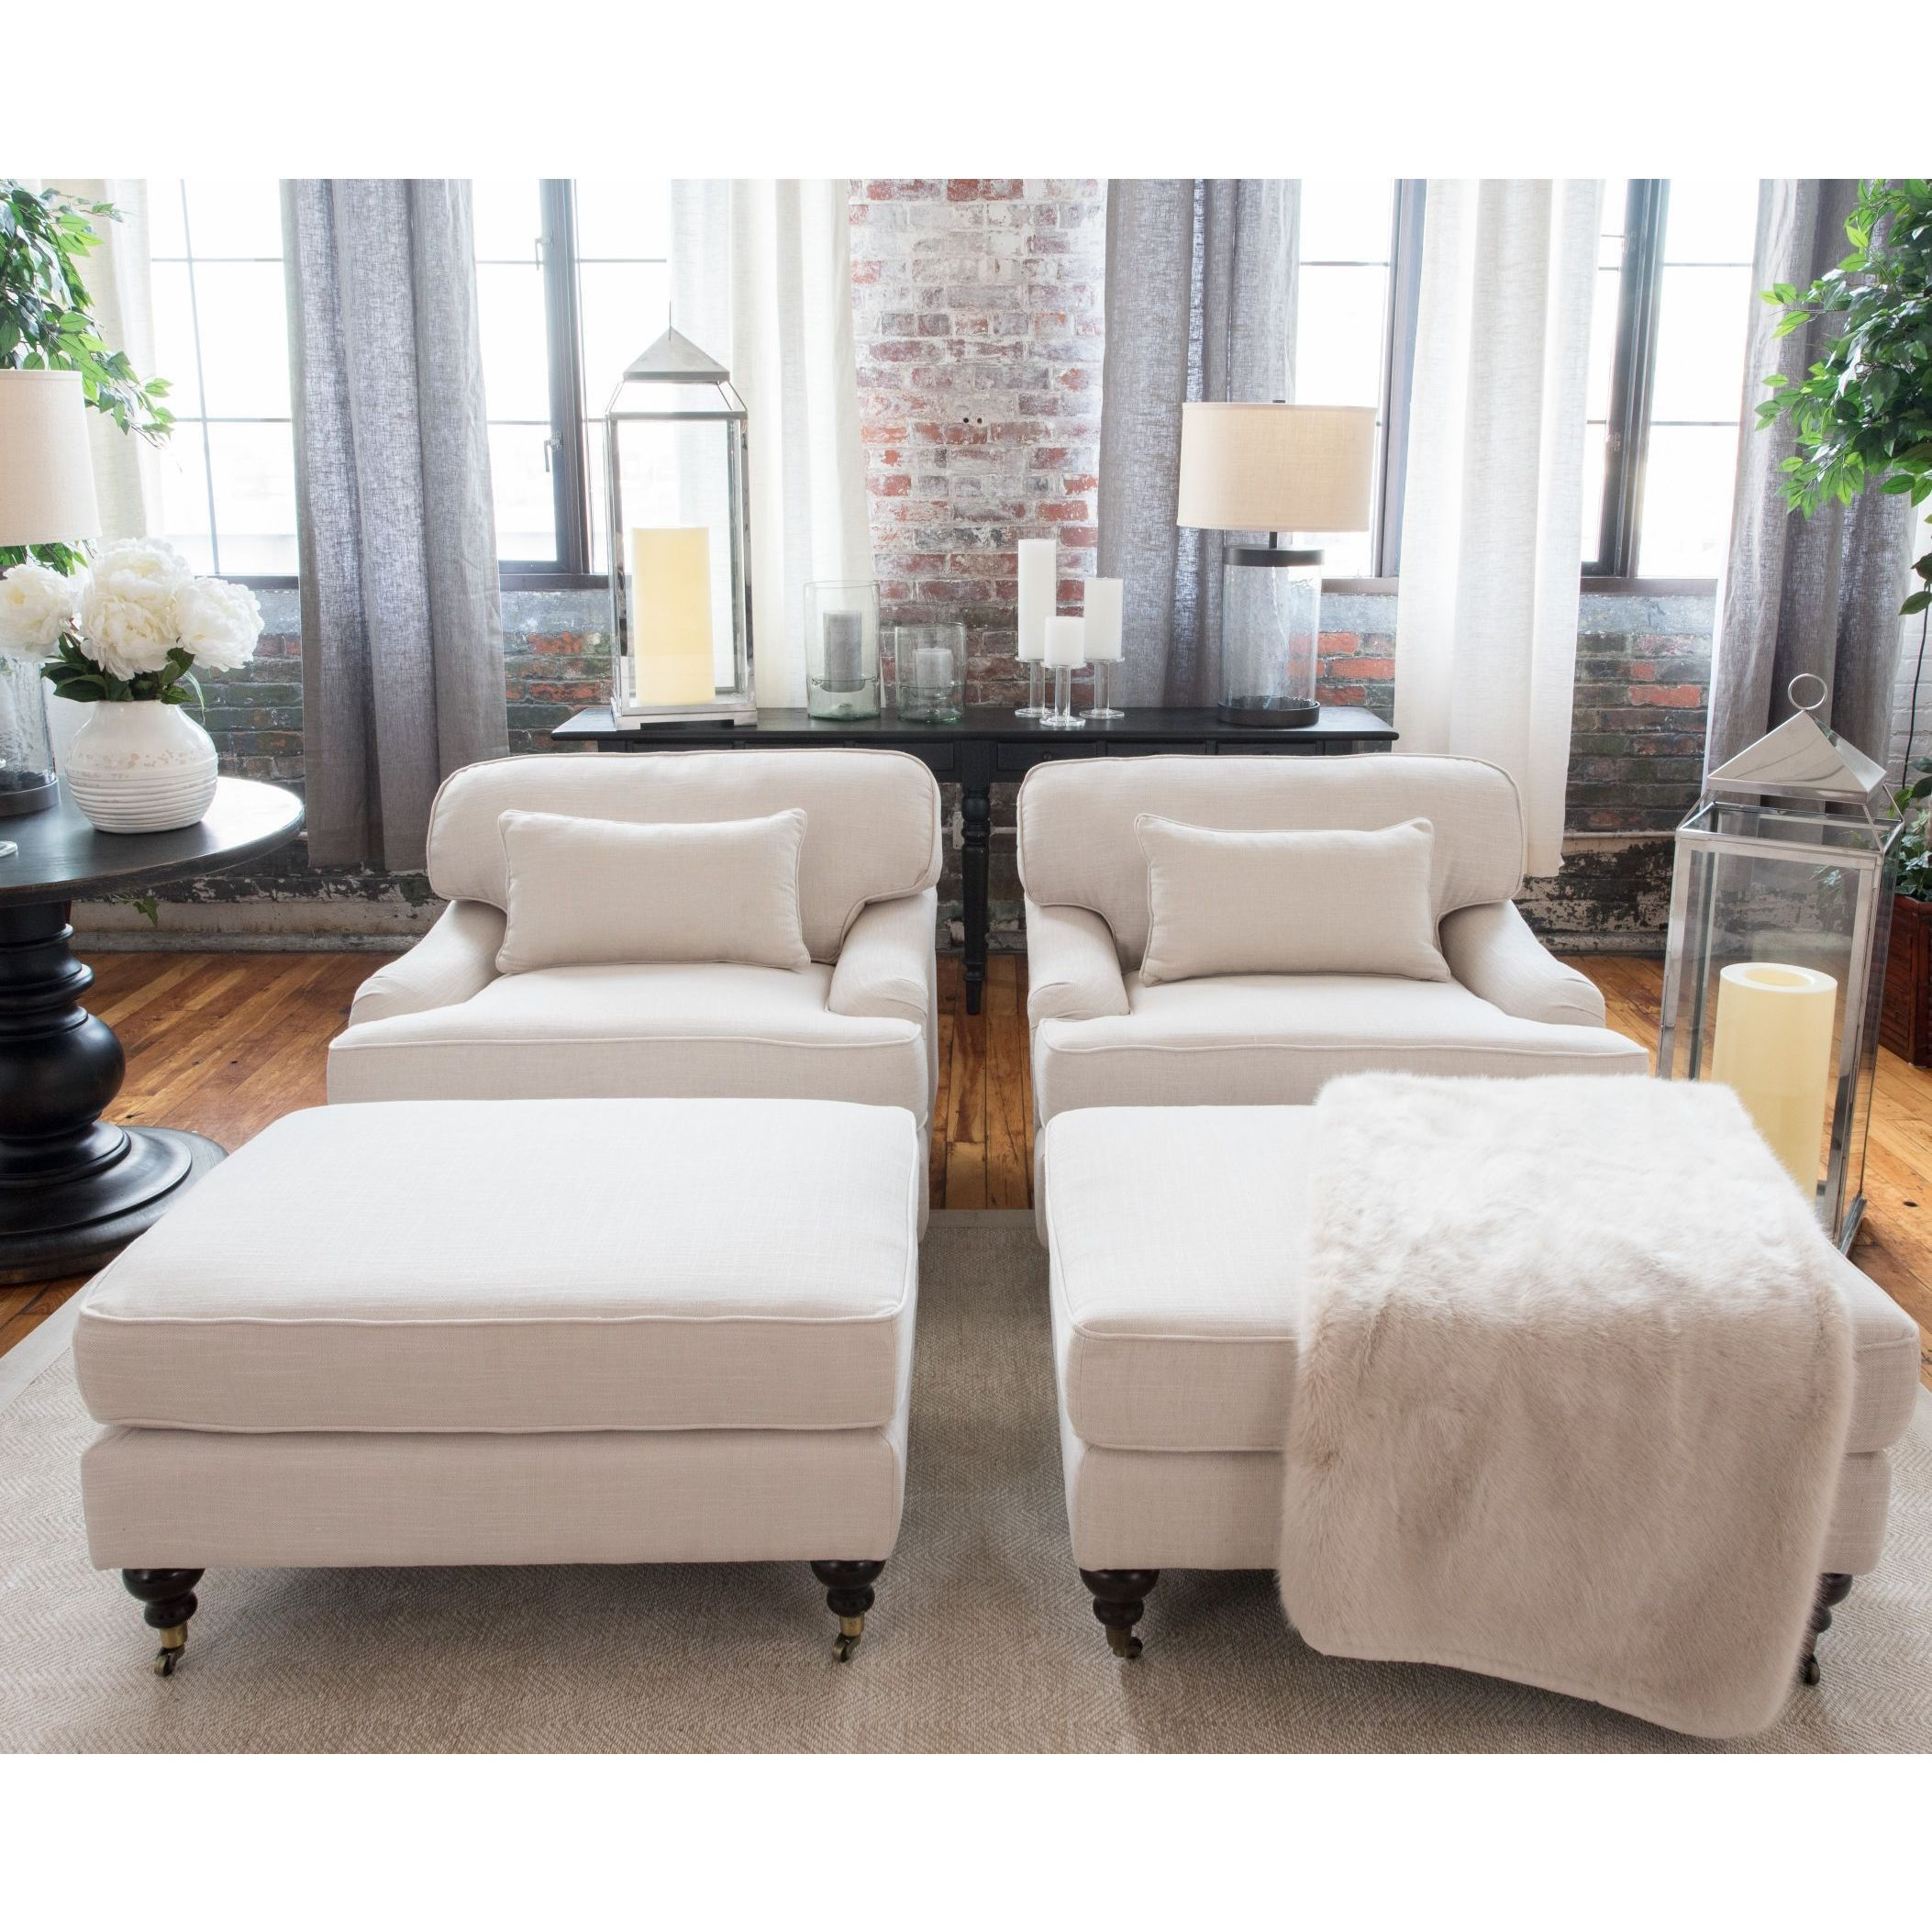 Elements Fine Home Furnishings Saint Tropez 4-Piece Collection Including 2-Standard Chairs and 2-Standard Ottomans